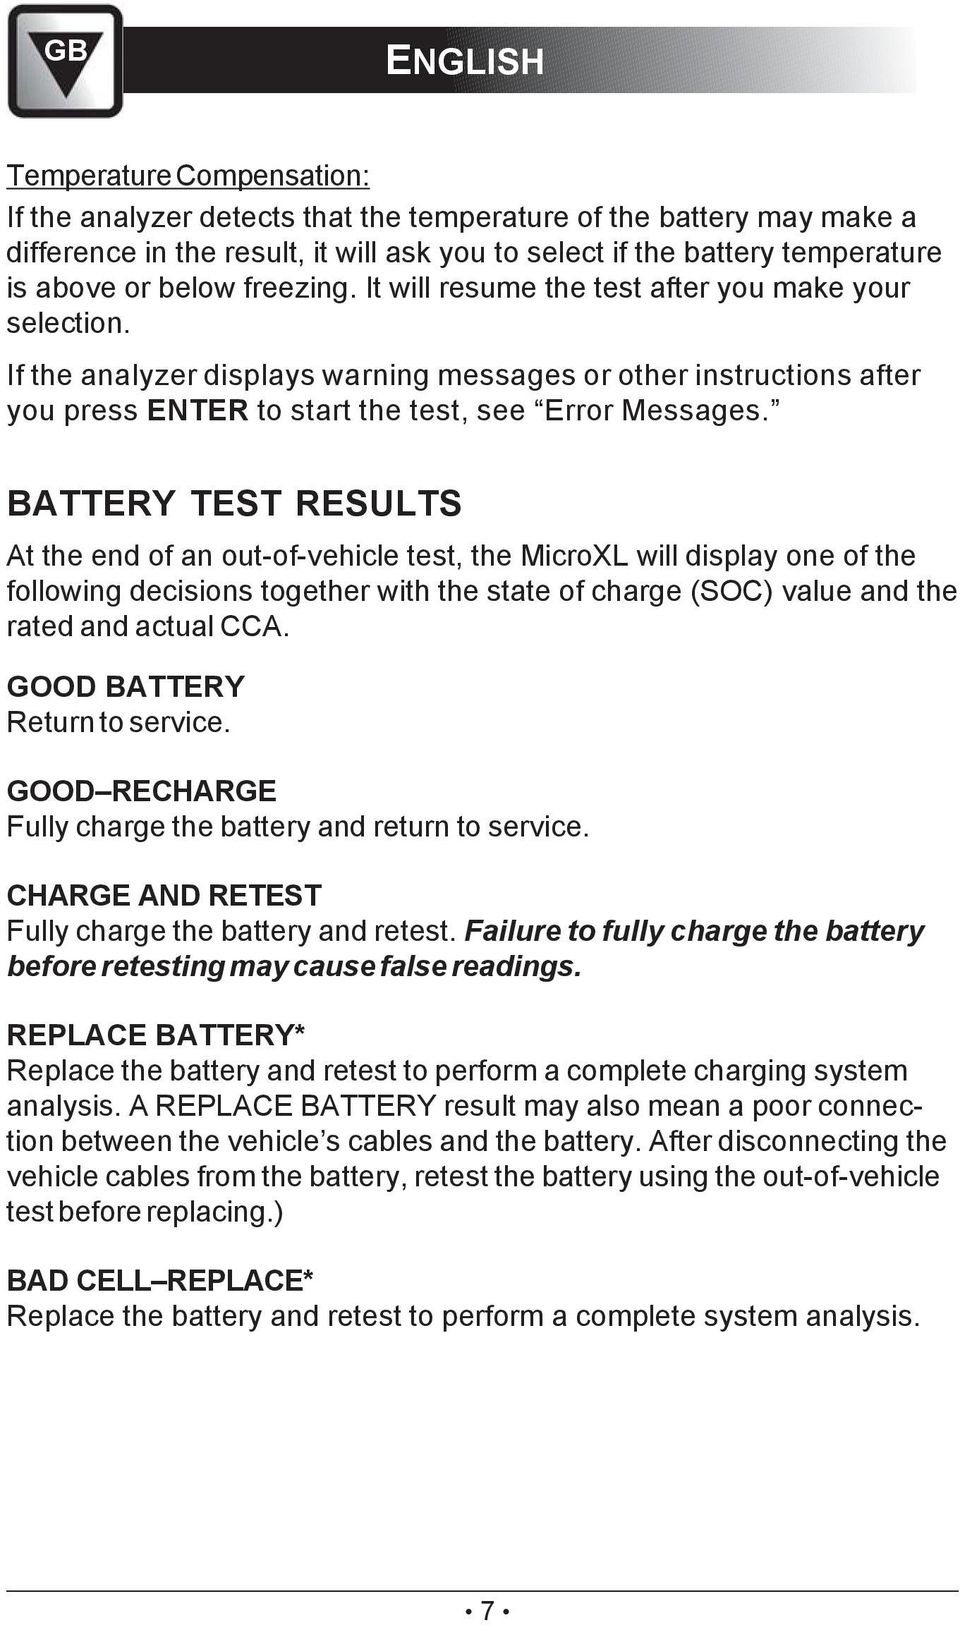 BATTERY TEST RESULTS At the end of an out-of-vehicle test, the MicroXL will display one of the following decisions together with the state of charge (SOC) value and the rated and actual CCA.